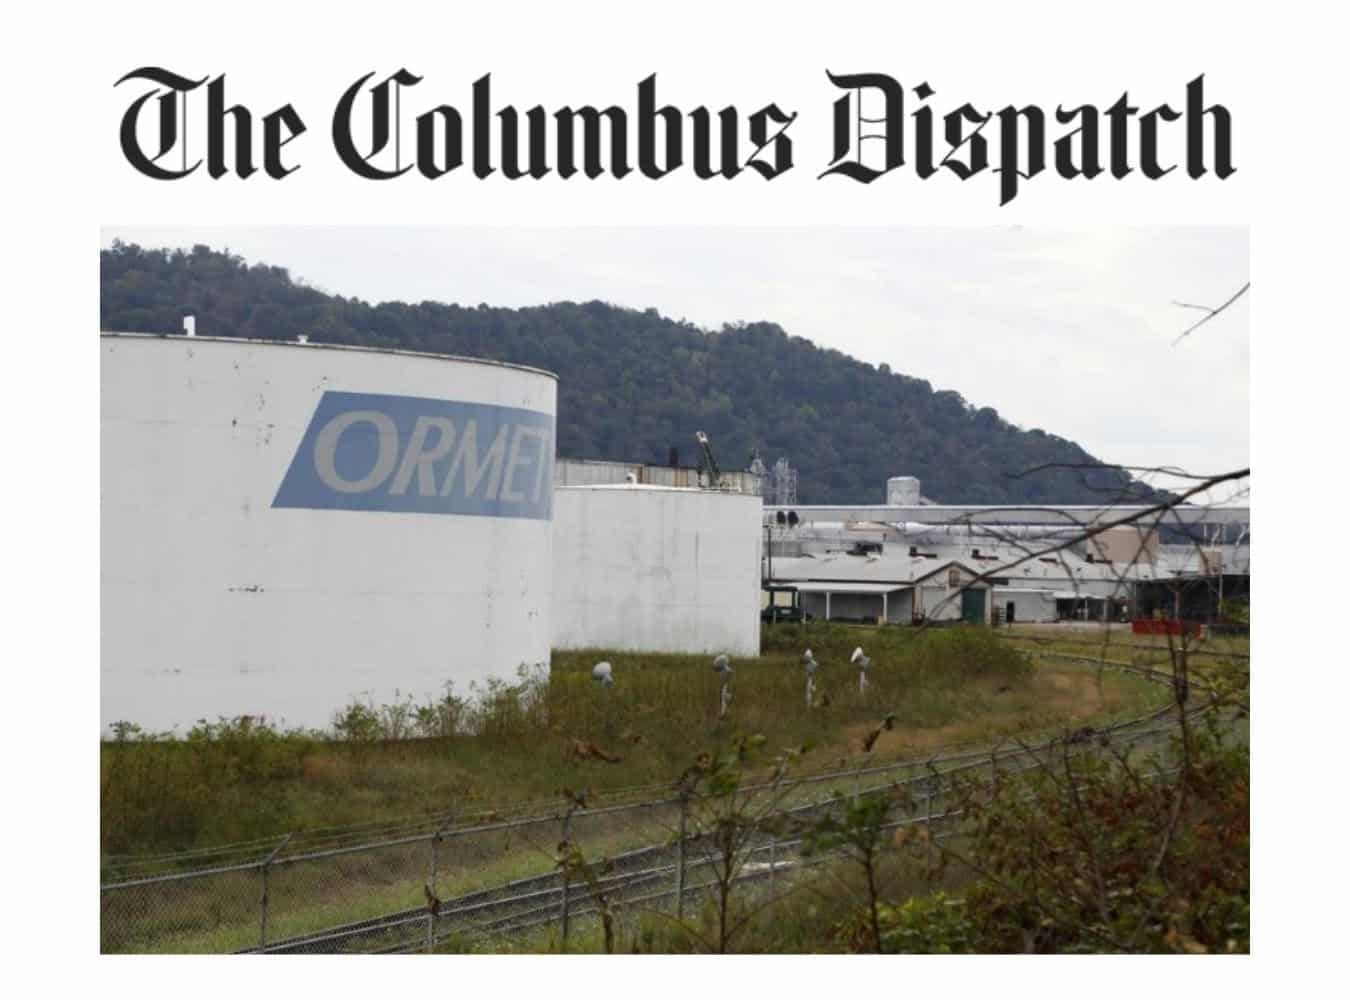 DP Facilities Planning Data Center on Former Ormet Site in Southeast Ohio